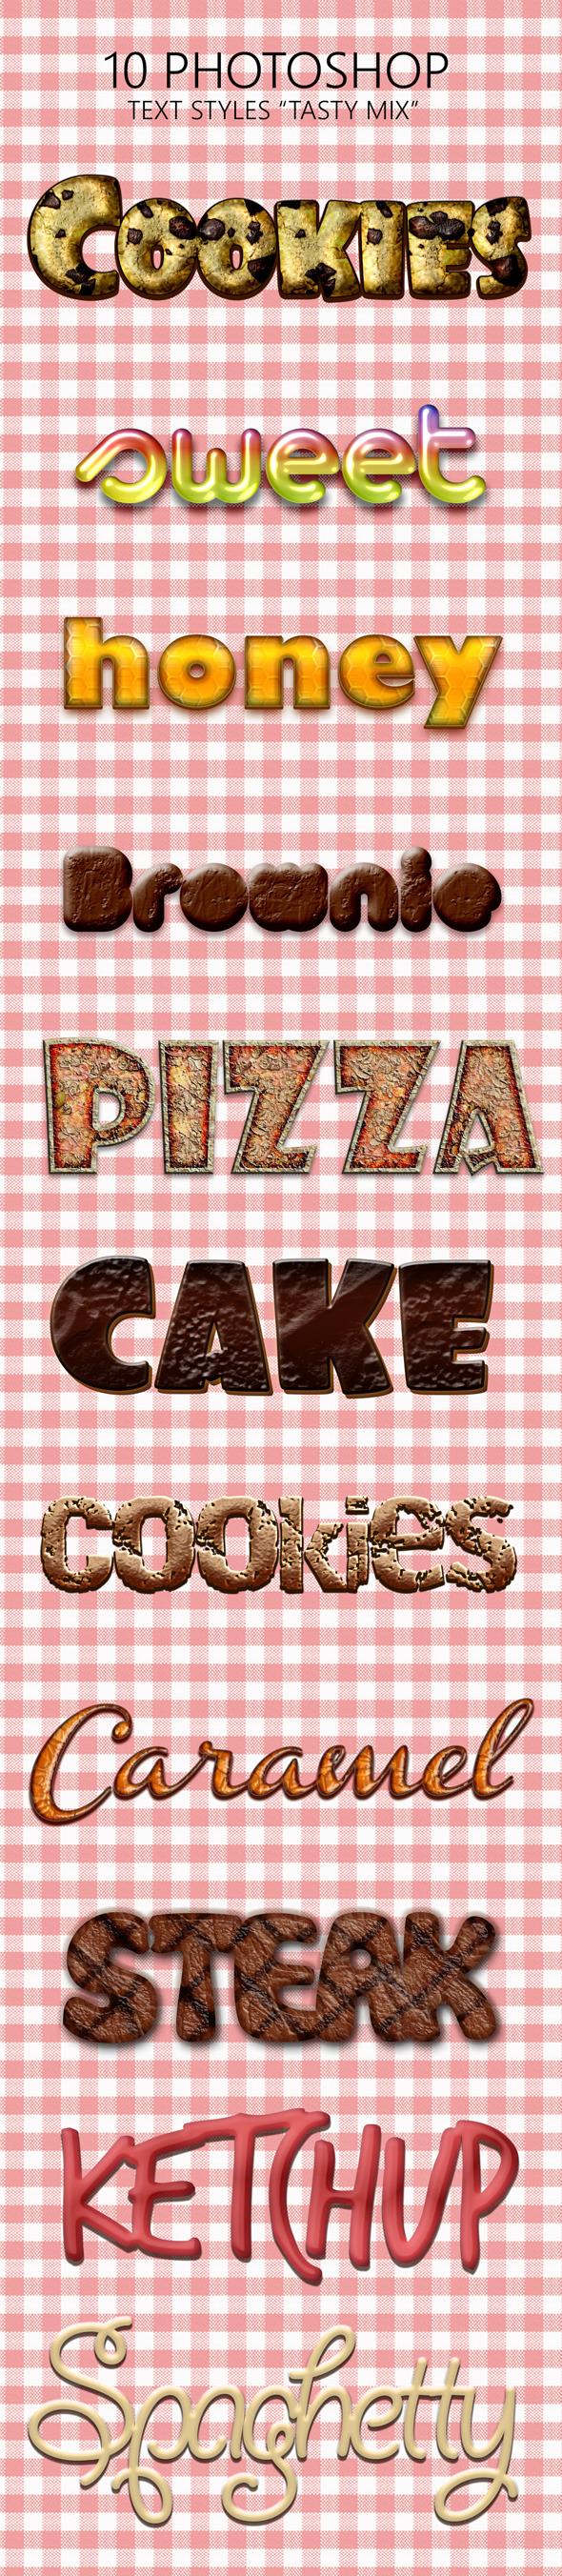 "10 Photoshop Styles ""Tasty Mix"" - Text Effects Styles"